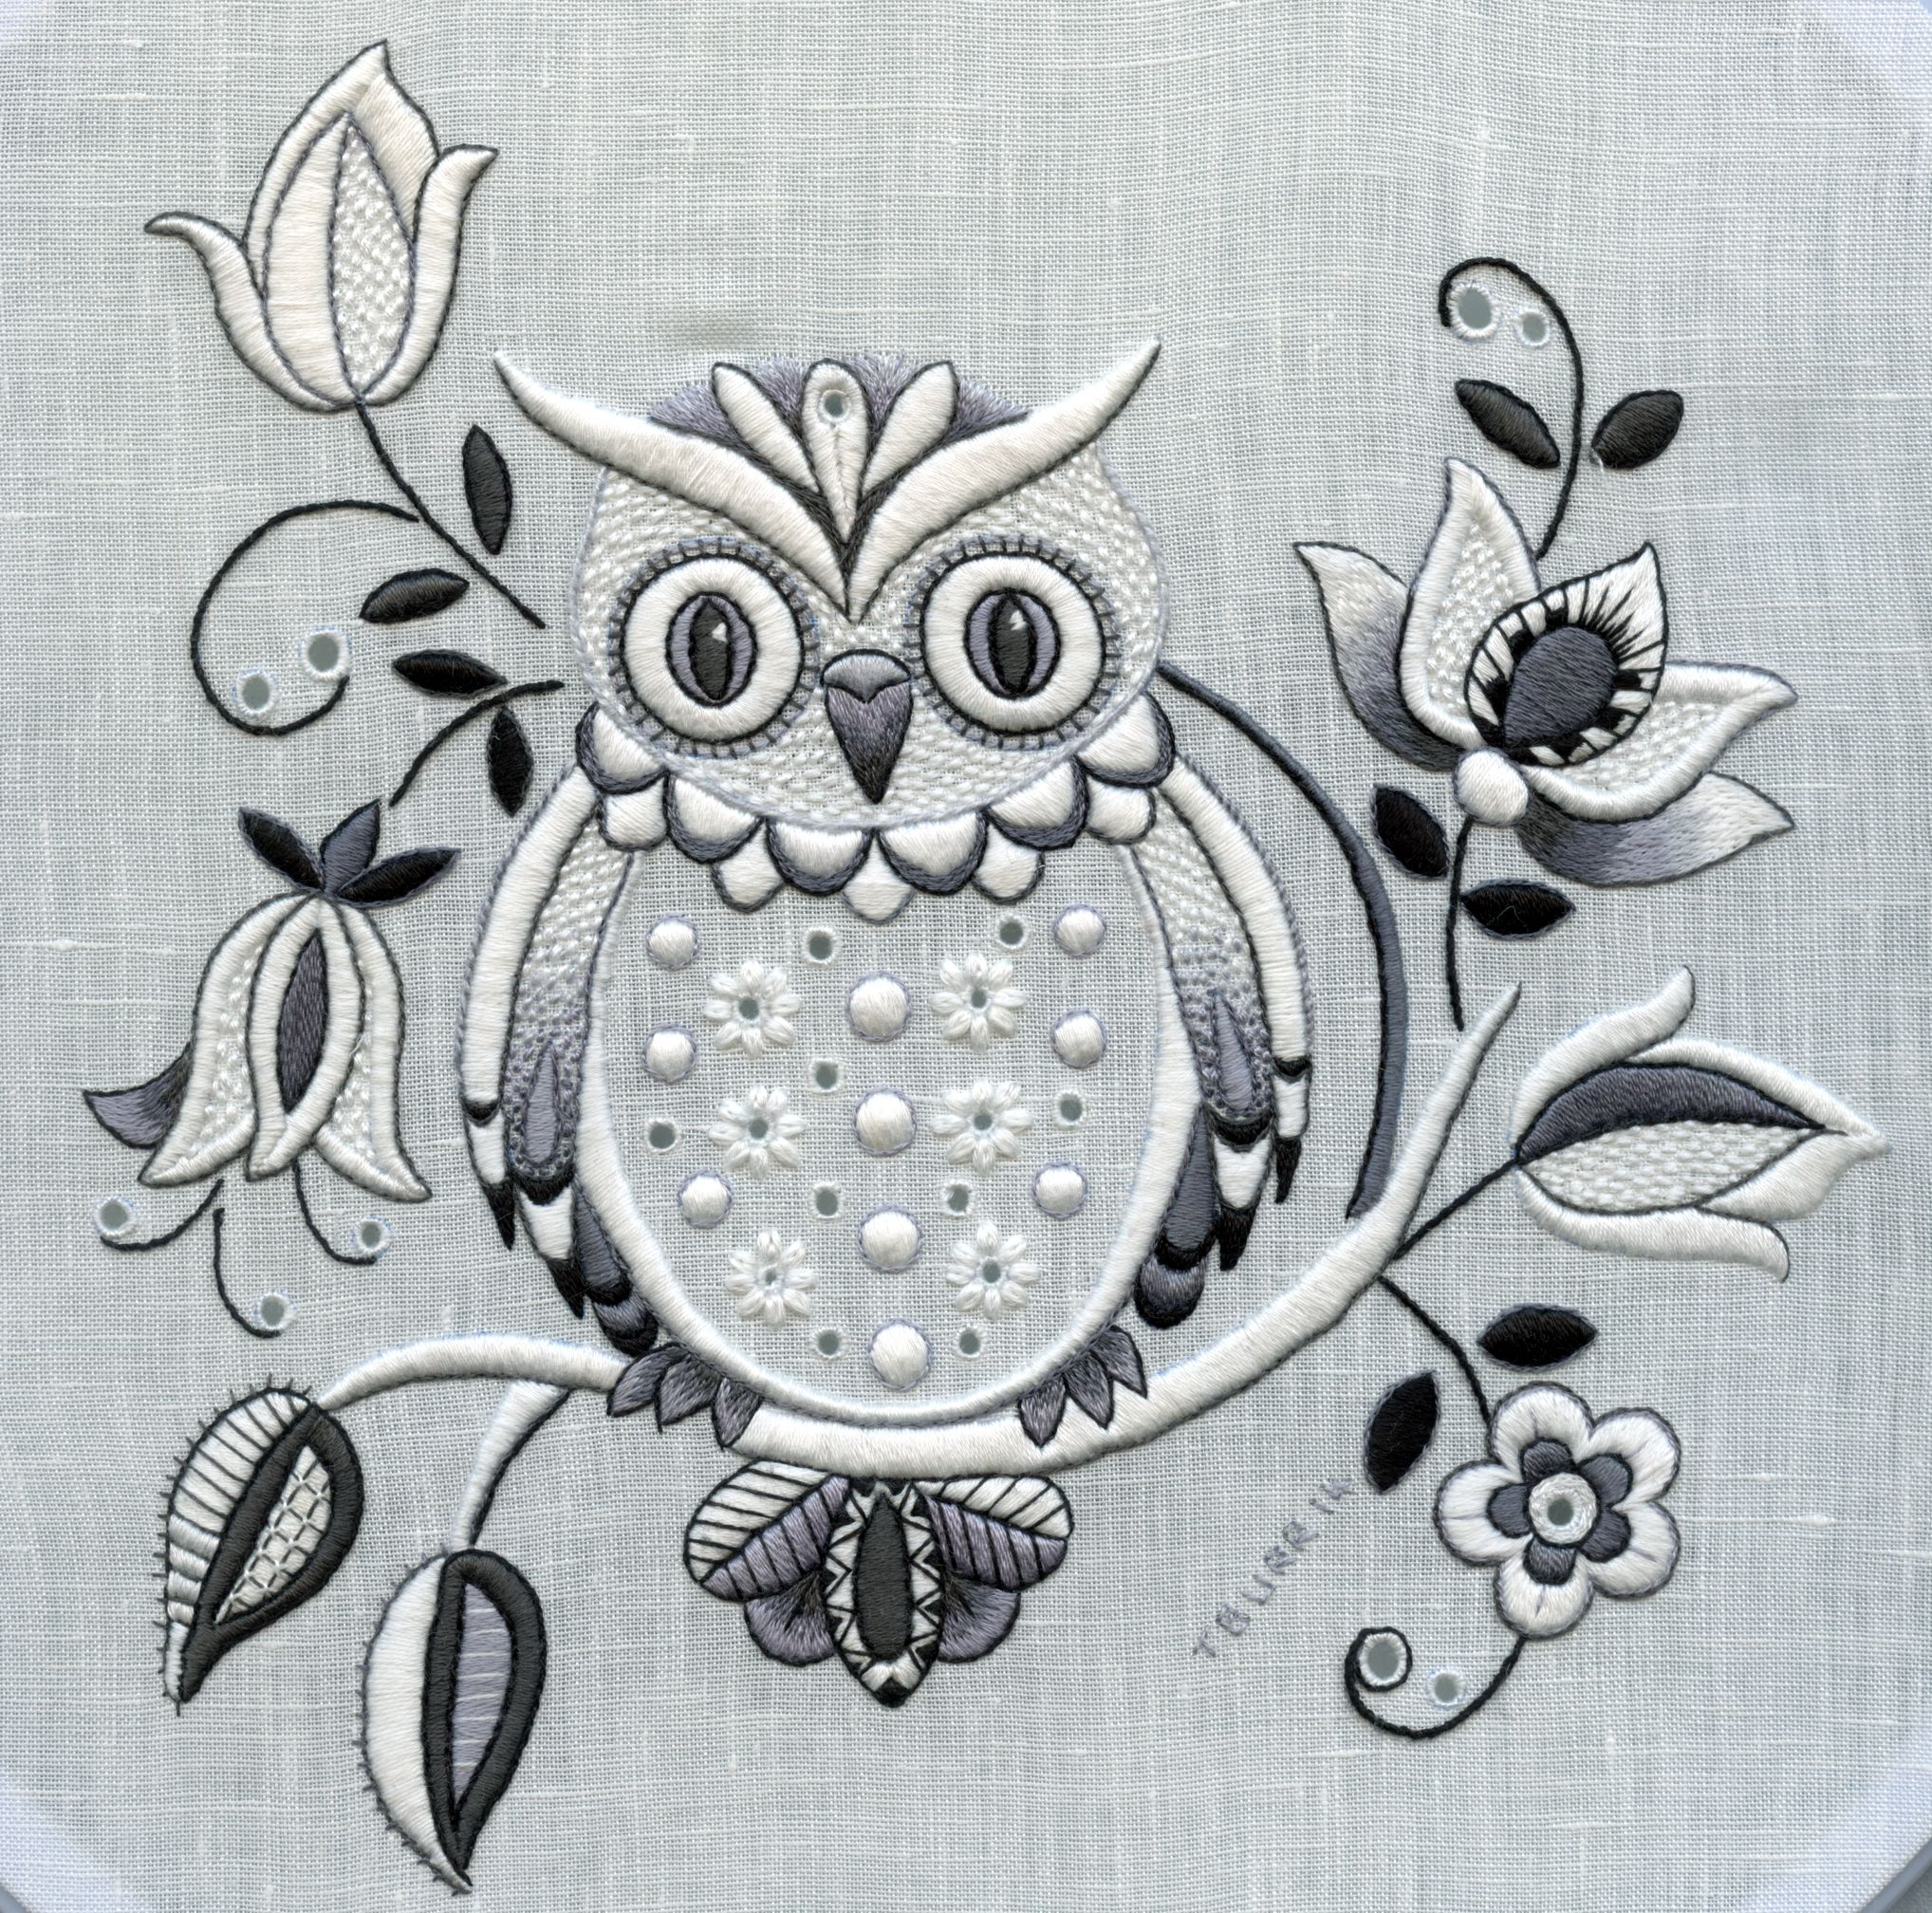 Traditionally whitework is done with white thread on a white moonlit owl stitched in whitework embroidery by trish burr bankloansurffo Image collections